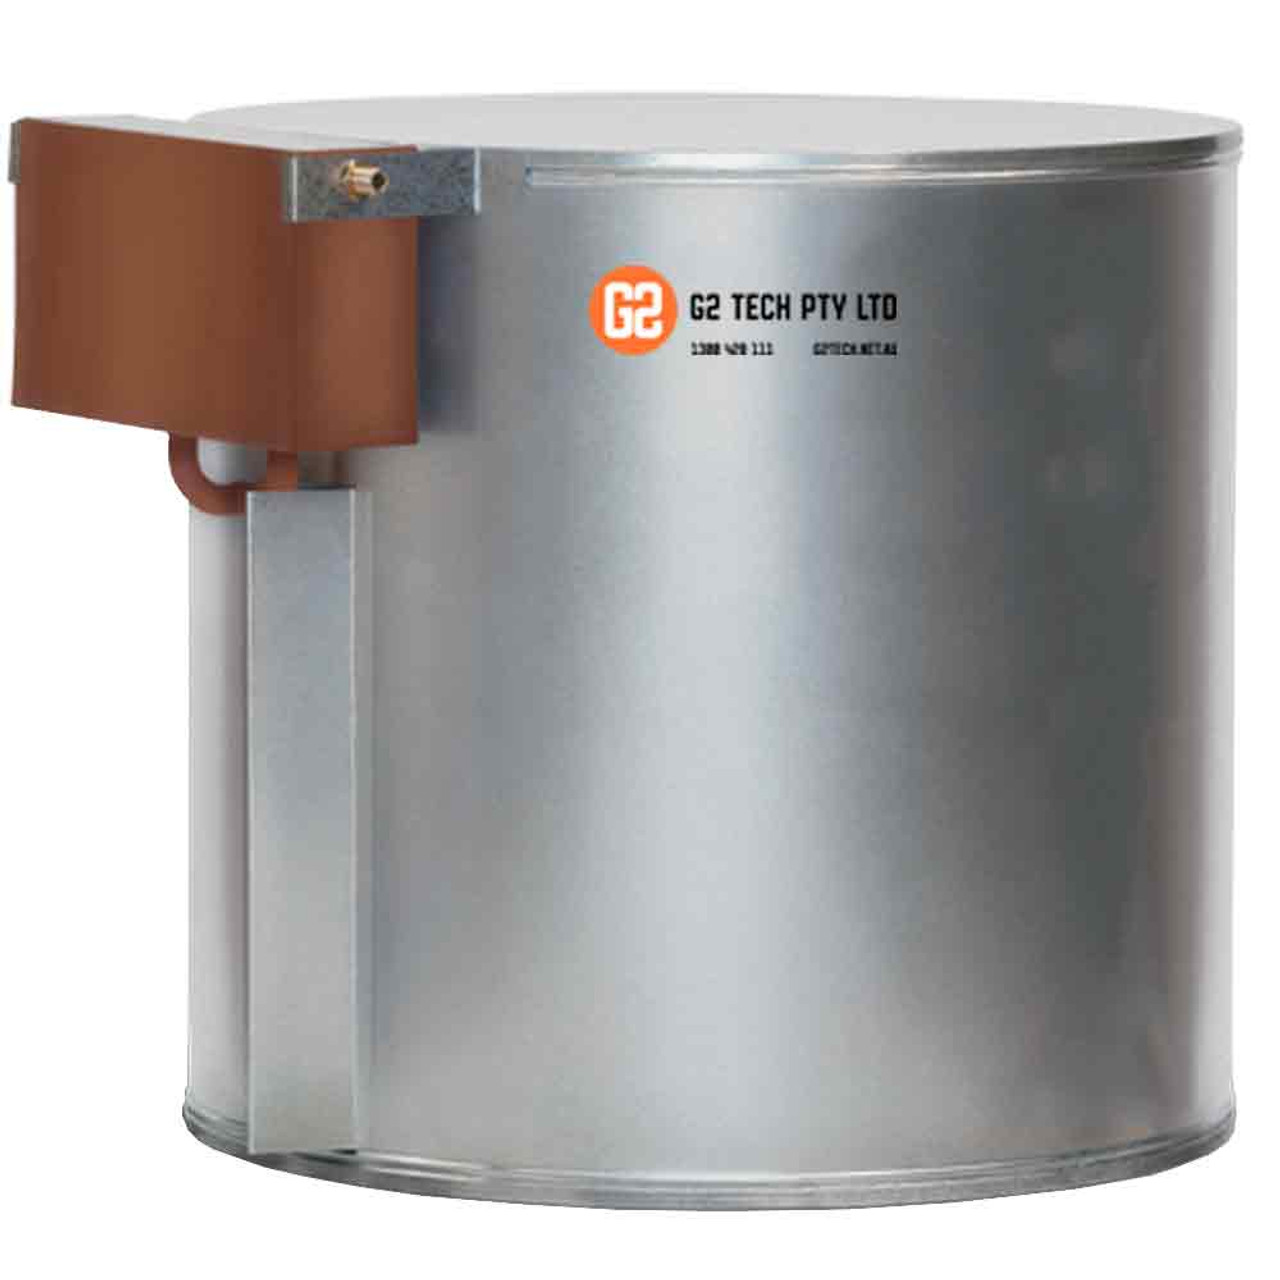 Stainless Steel Automatic Hot Water Booster Pump Gravity Fed Hot Water System